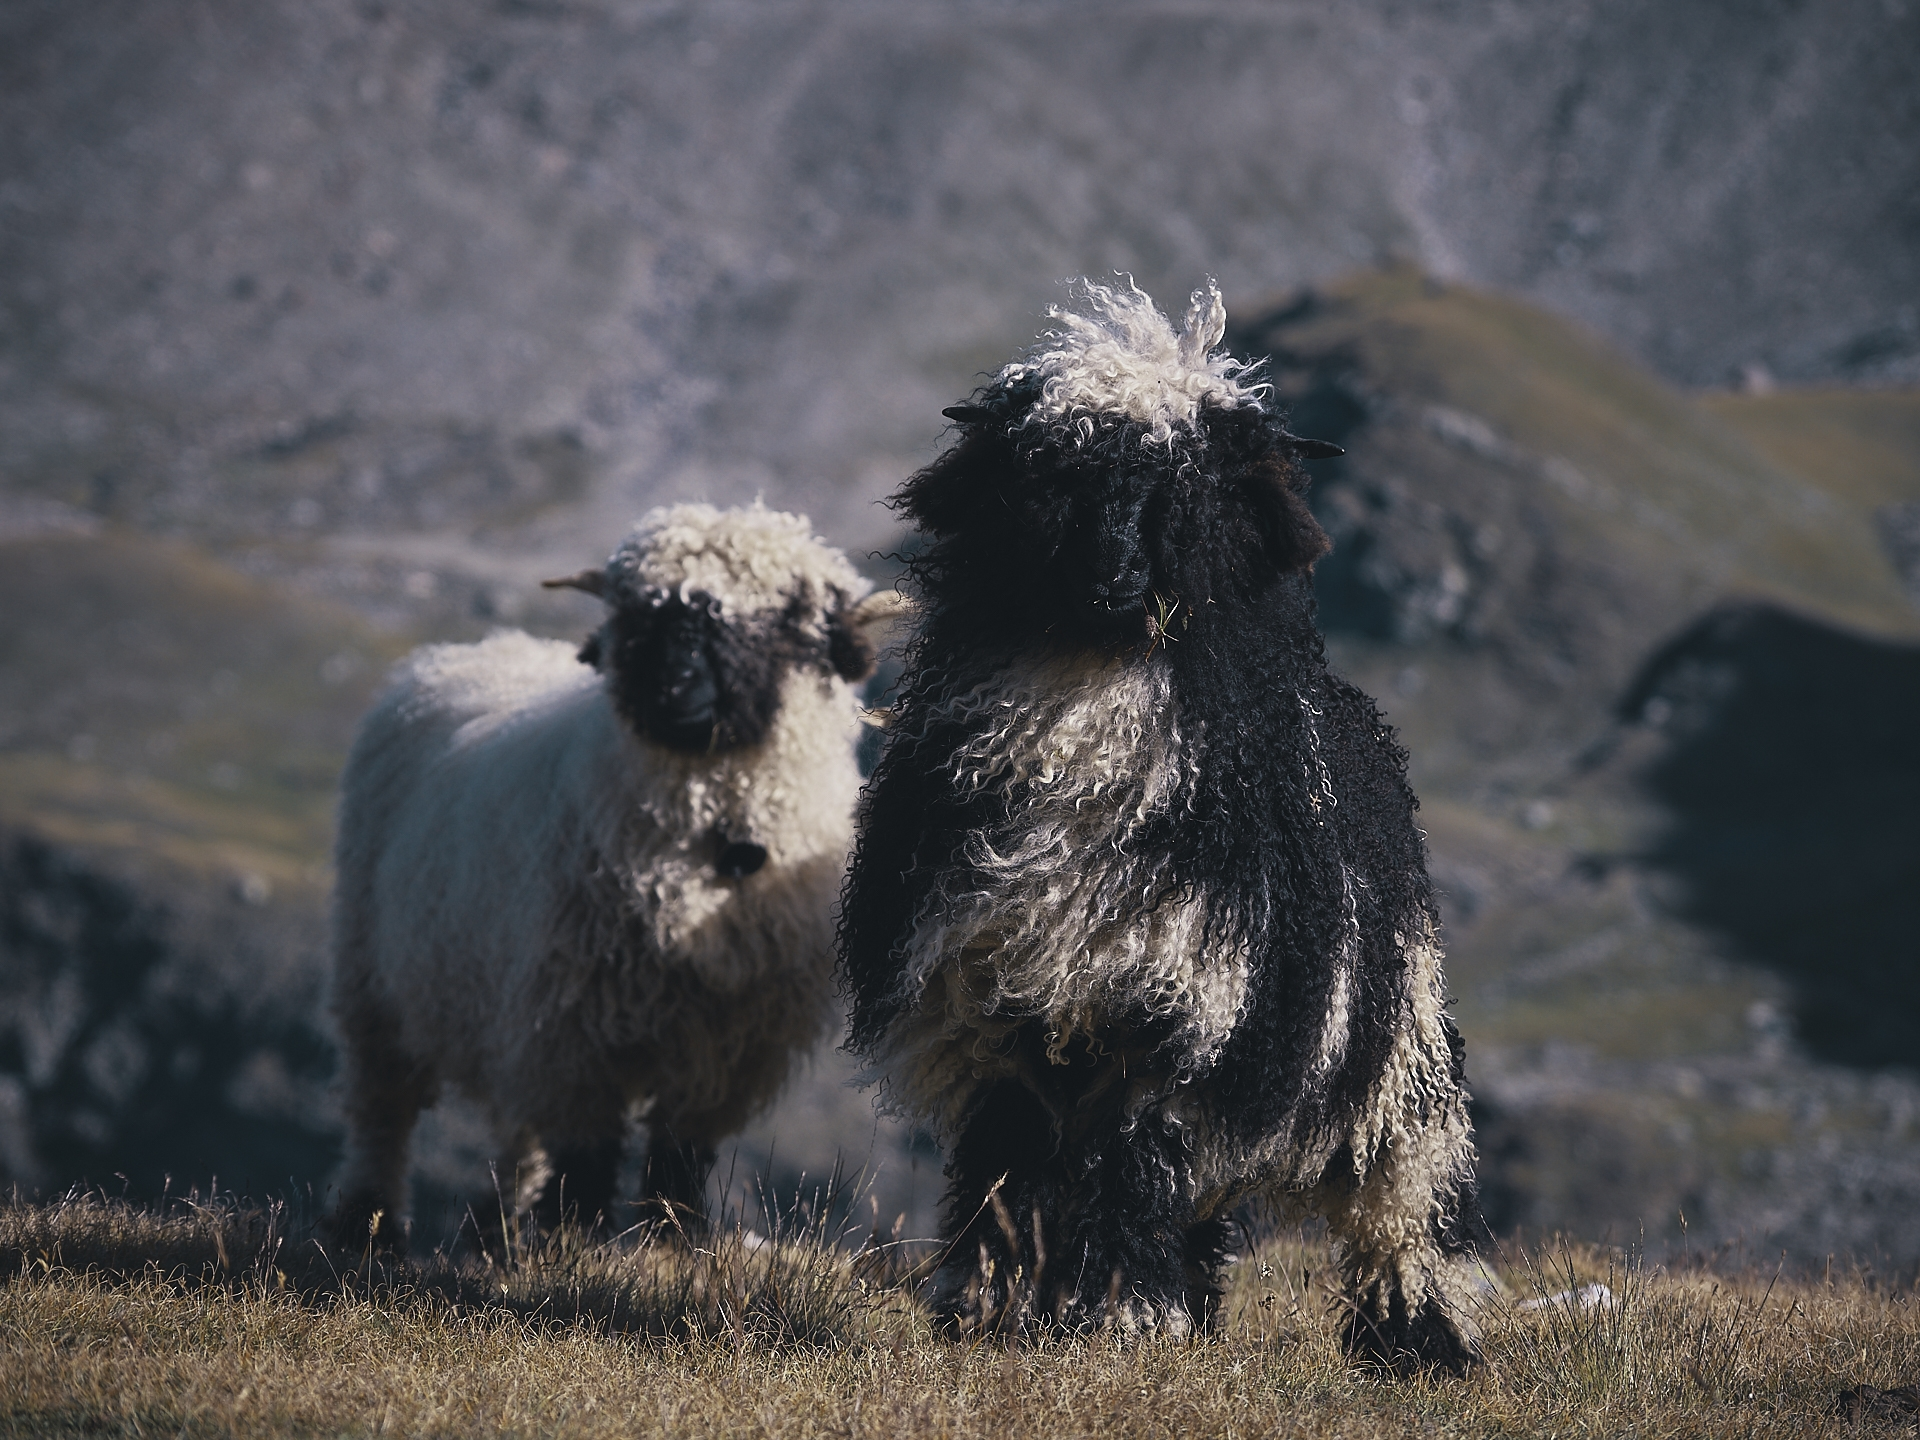 Black Nose sheep of the Valais, Switzerland